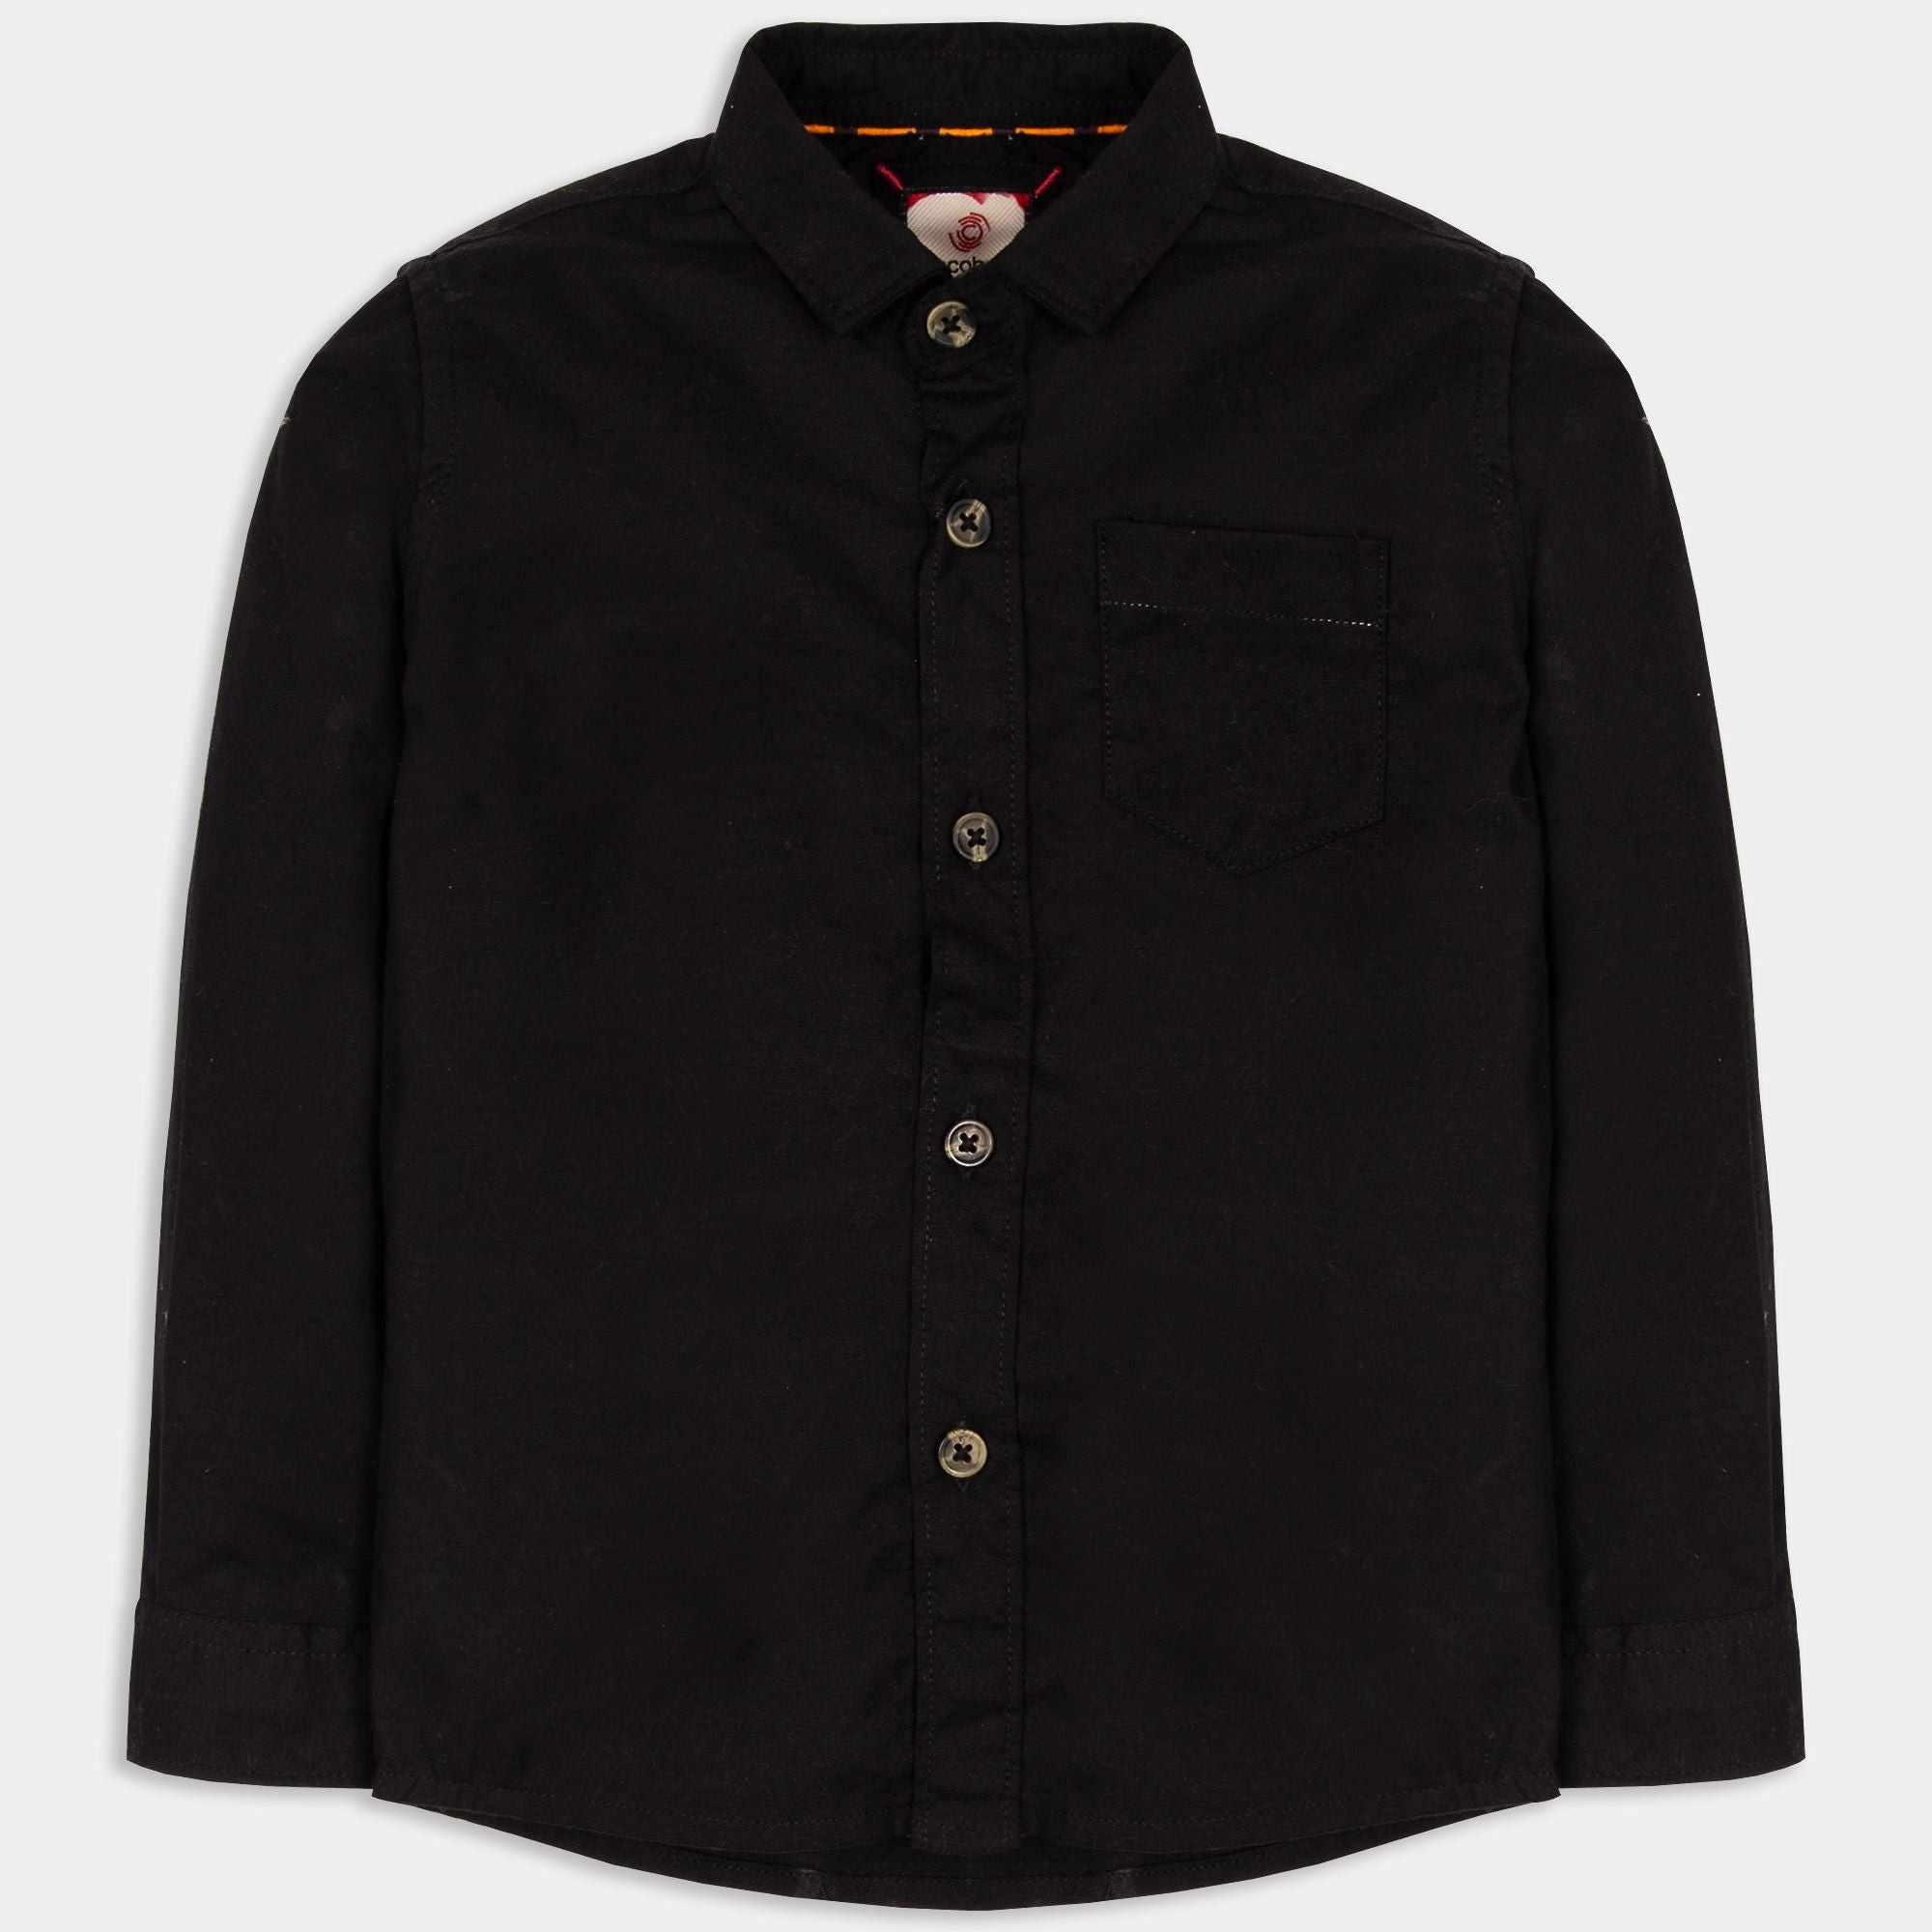 Jade Black Shirt